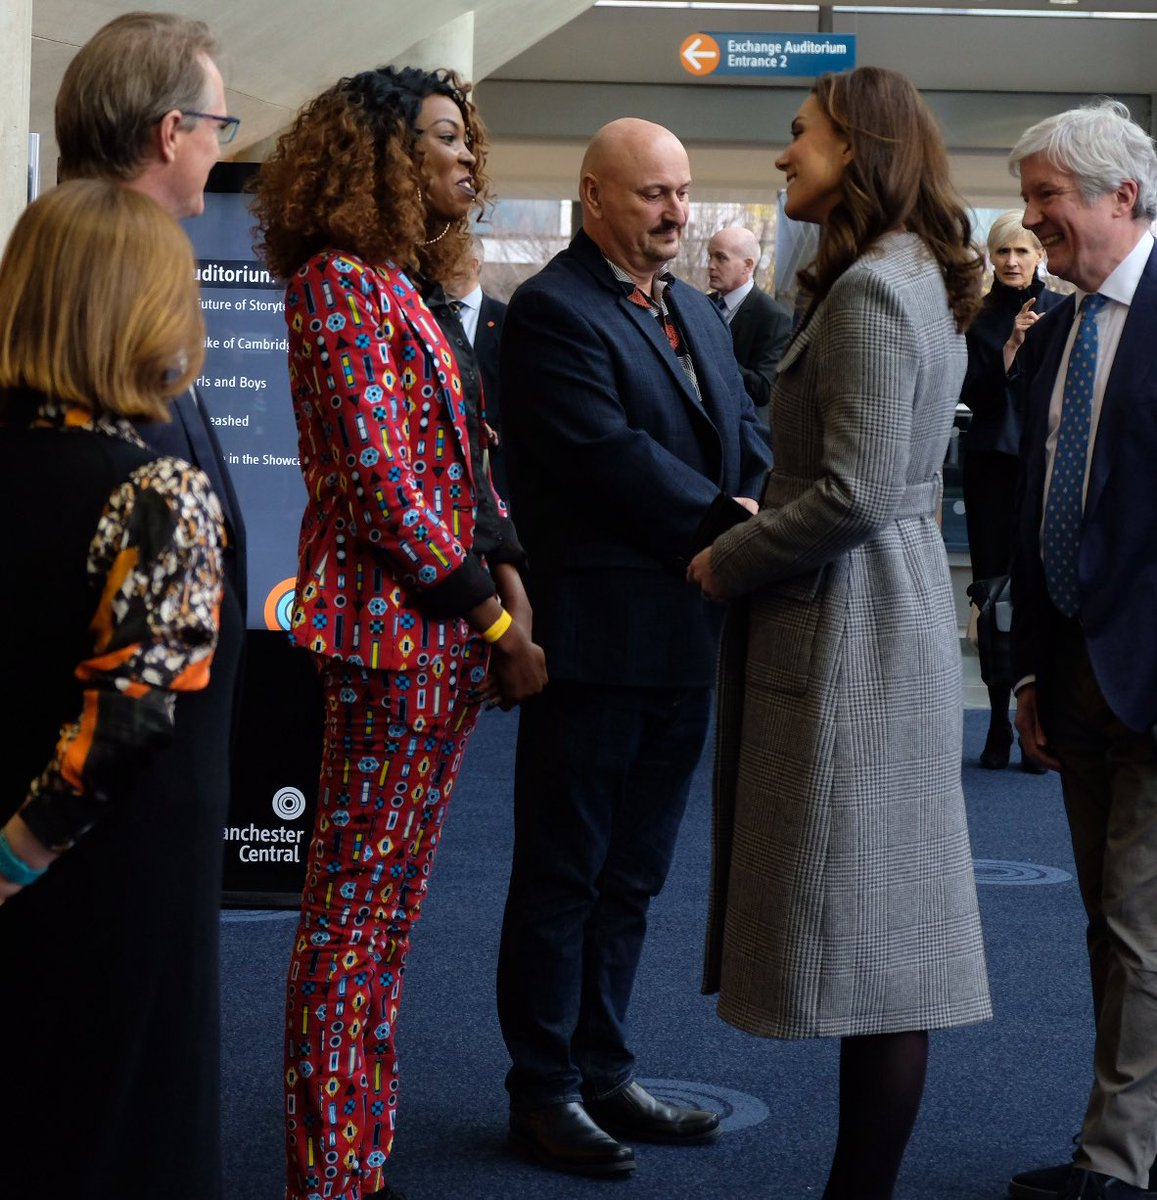 Kiss FM presenter Adelle Onyango is a happy woman after she got to meet the Royal Family during a summit in Manchester.